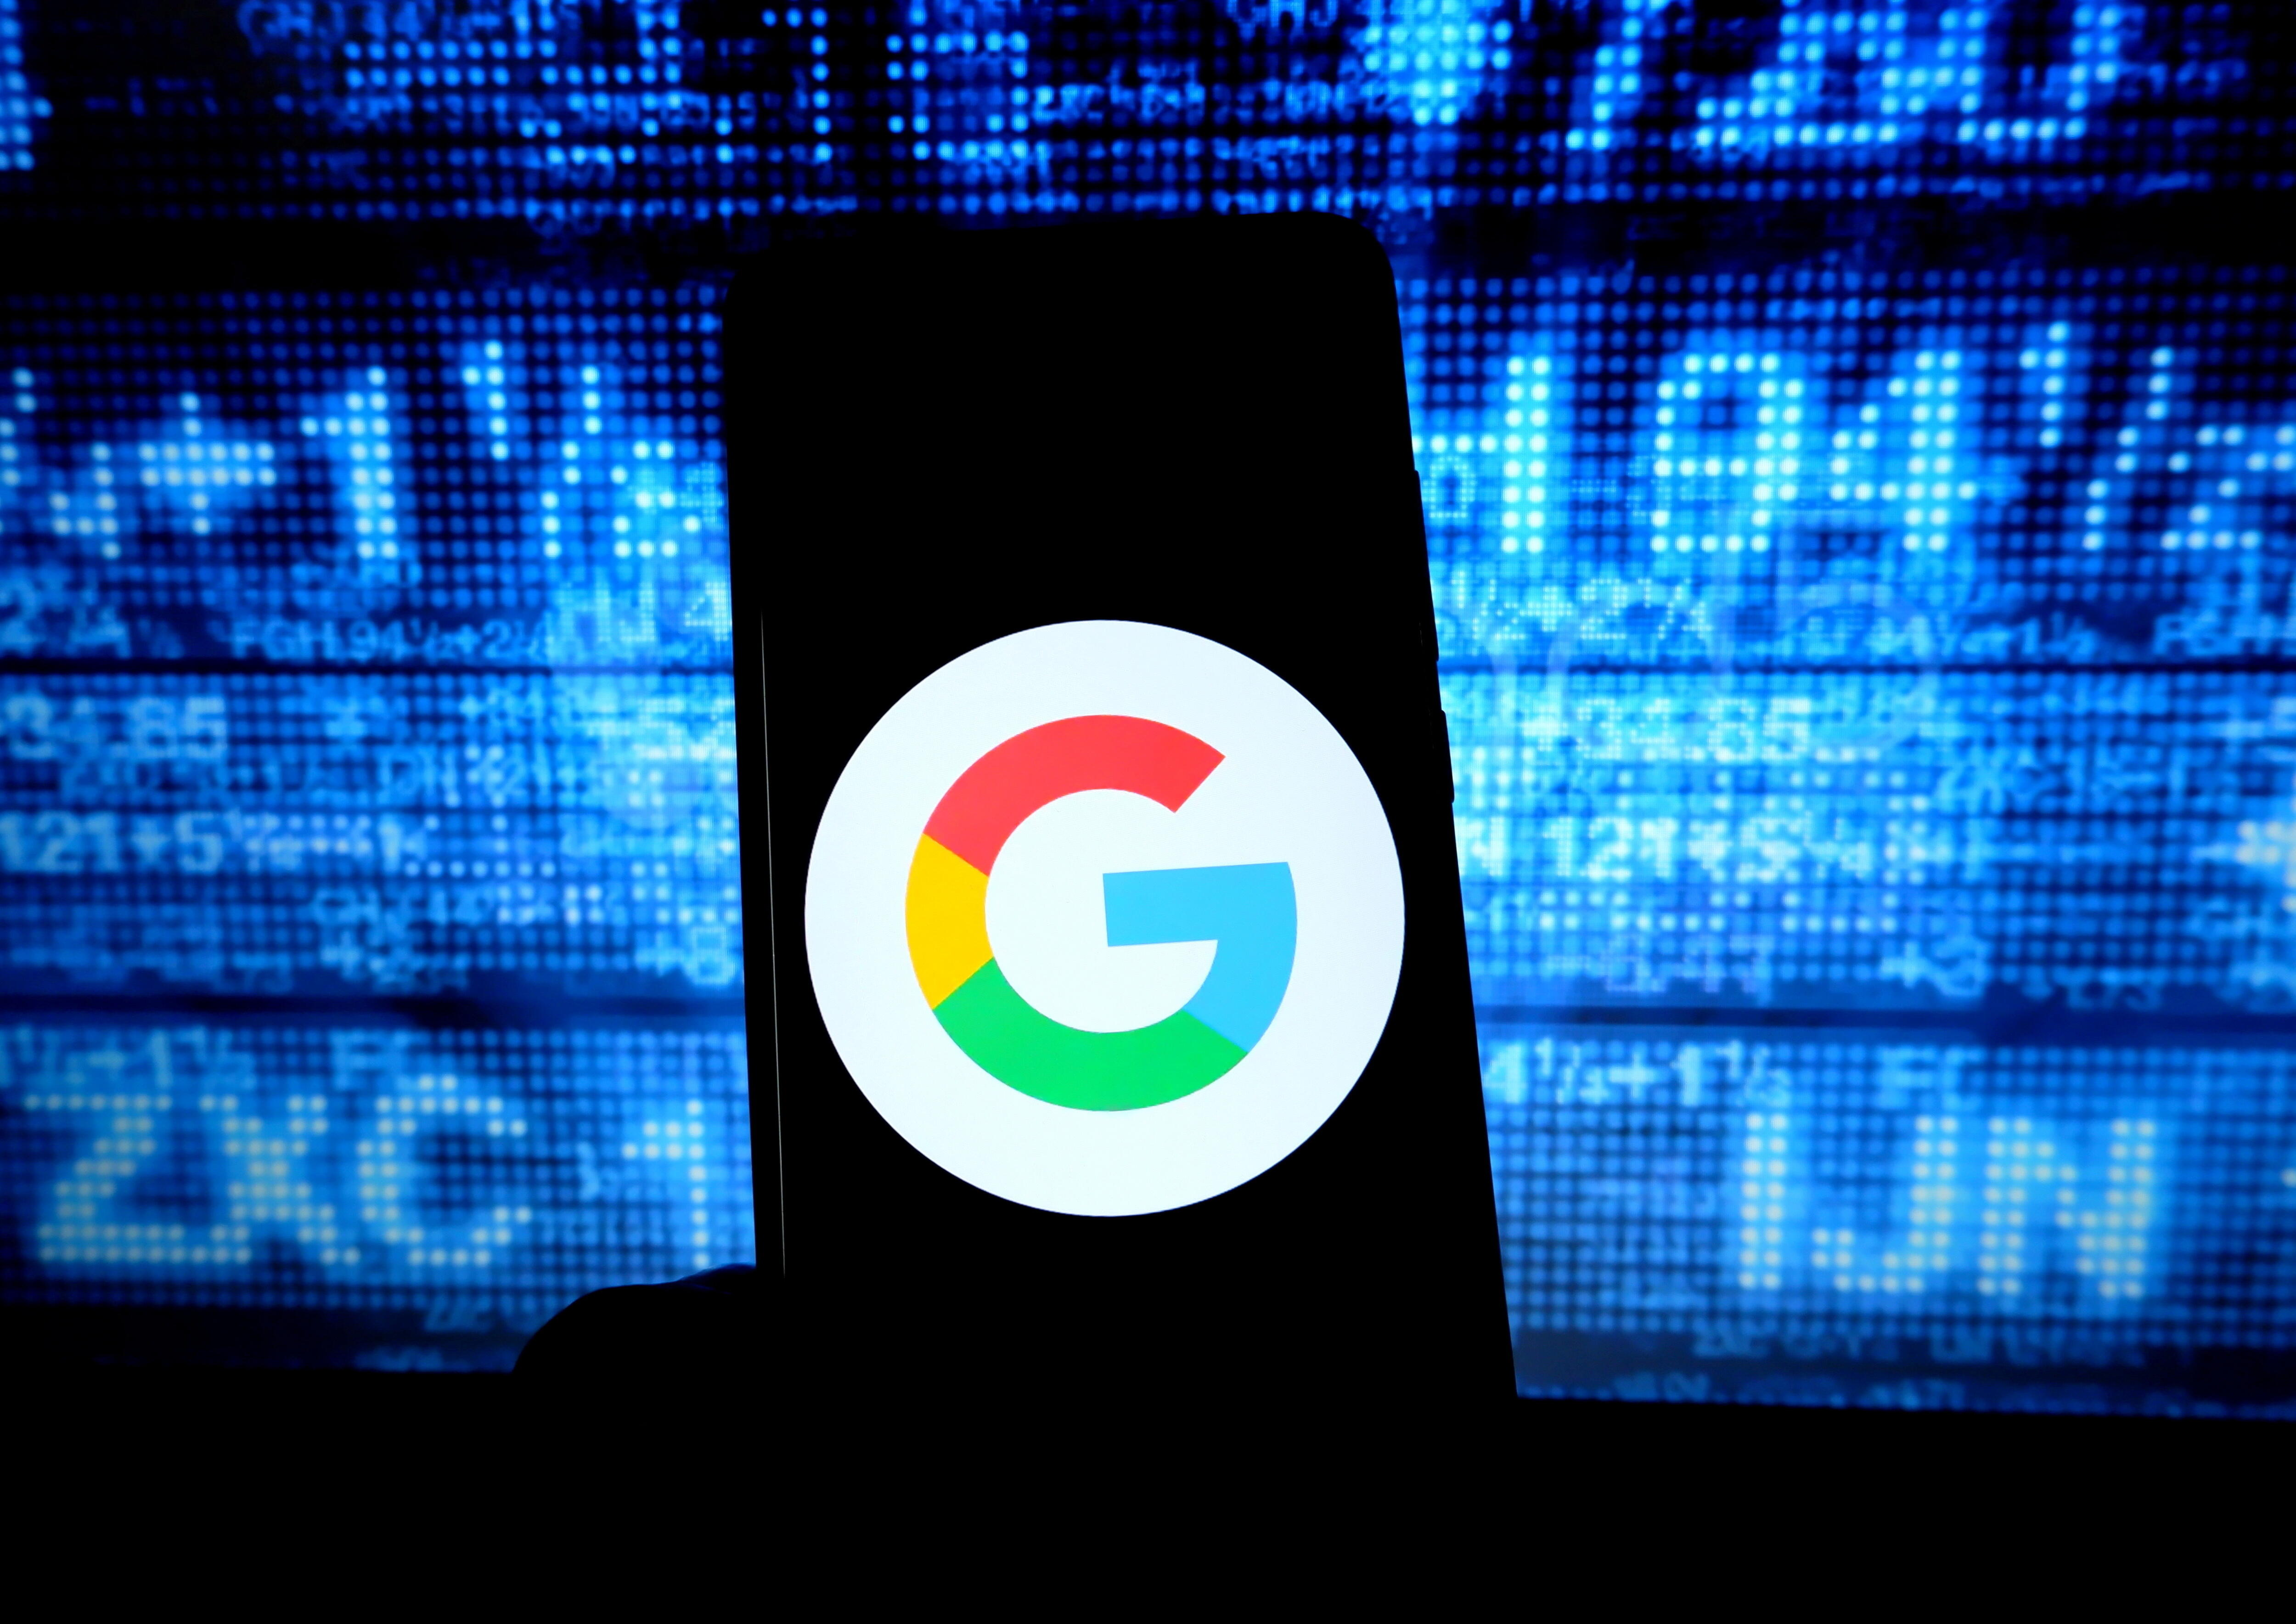 <p>Google is providing information to police based on what people are searching for, including data like IP addresses.</p>